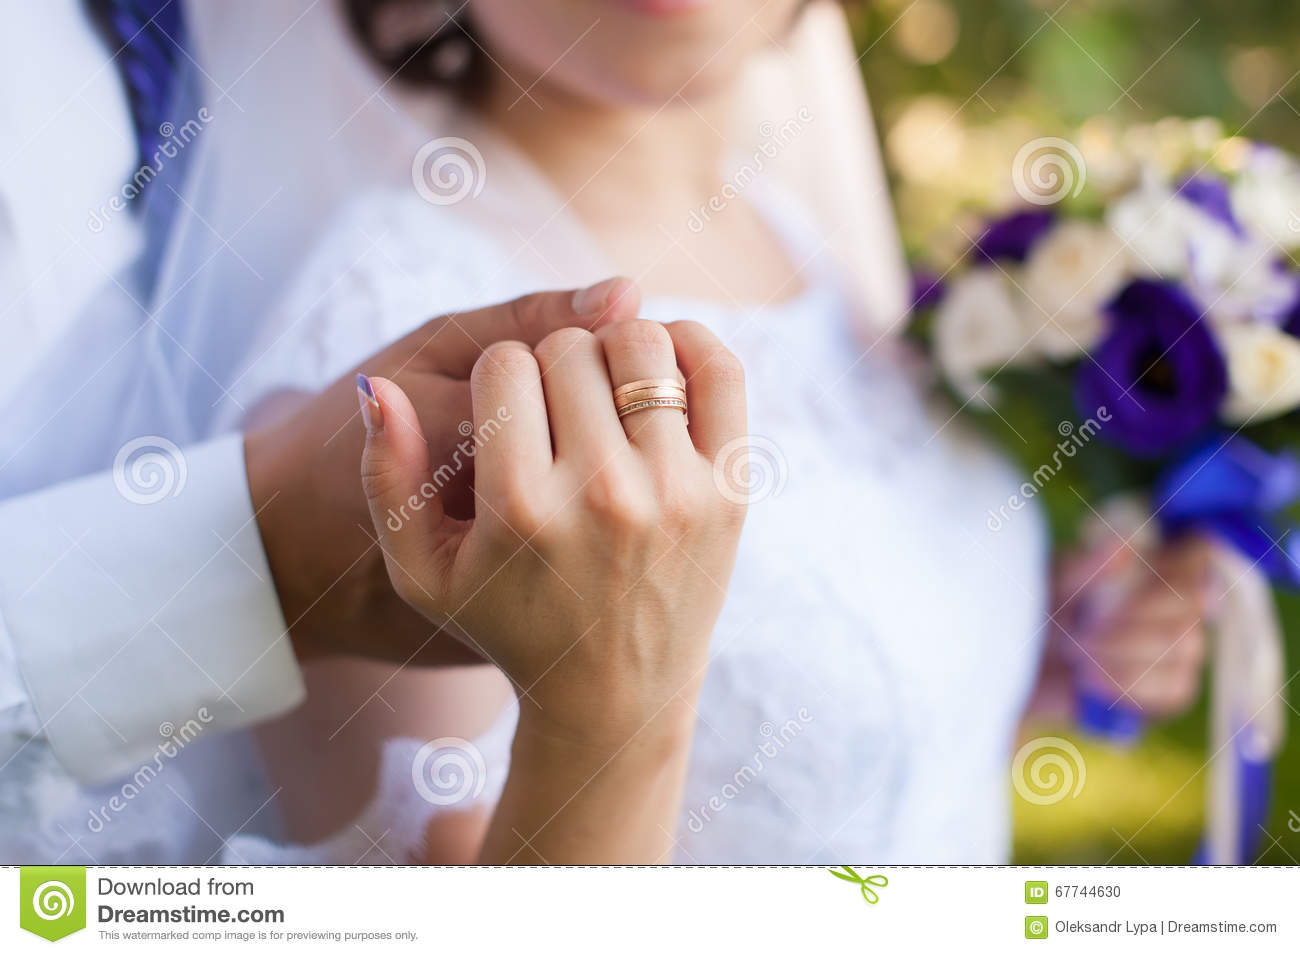 Man and woman hugging, holding hands with ring